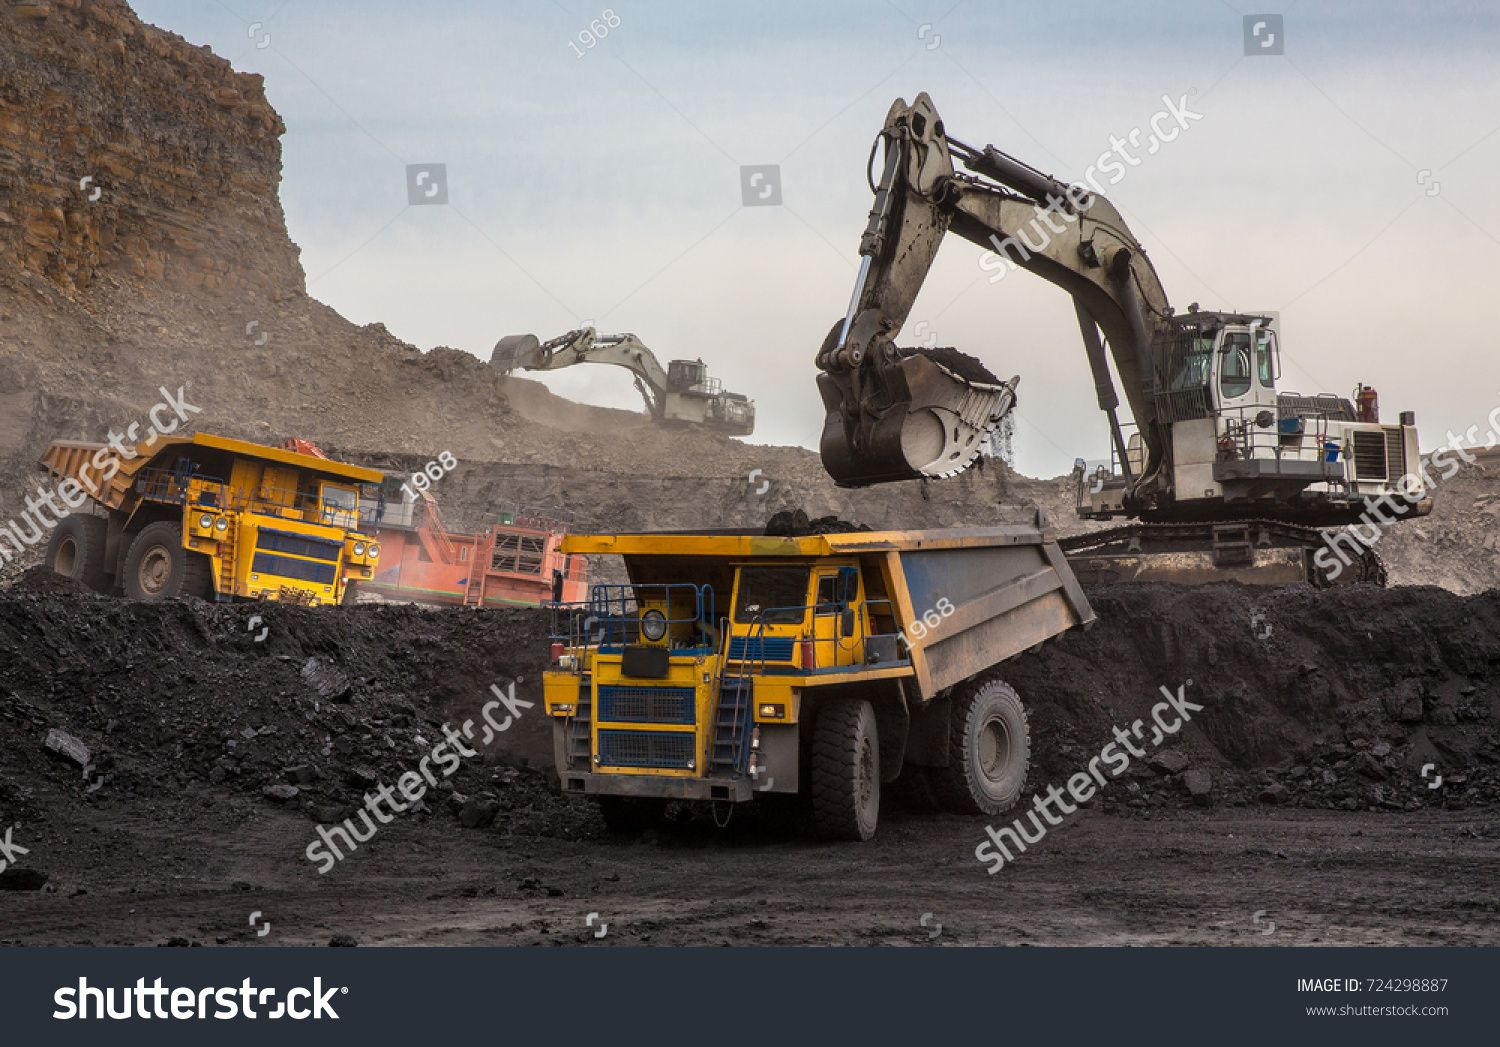 Loading of coal into truck excavator at work mining